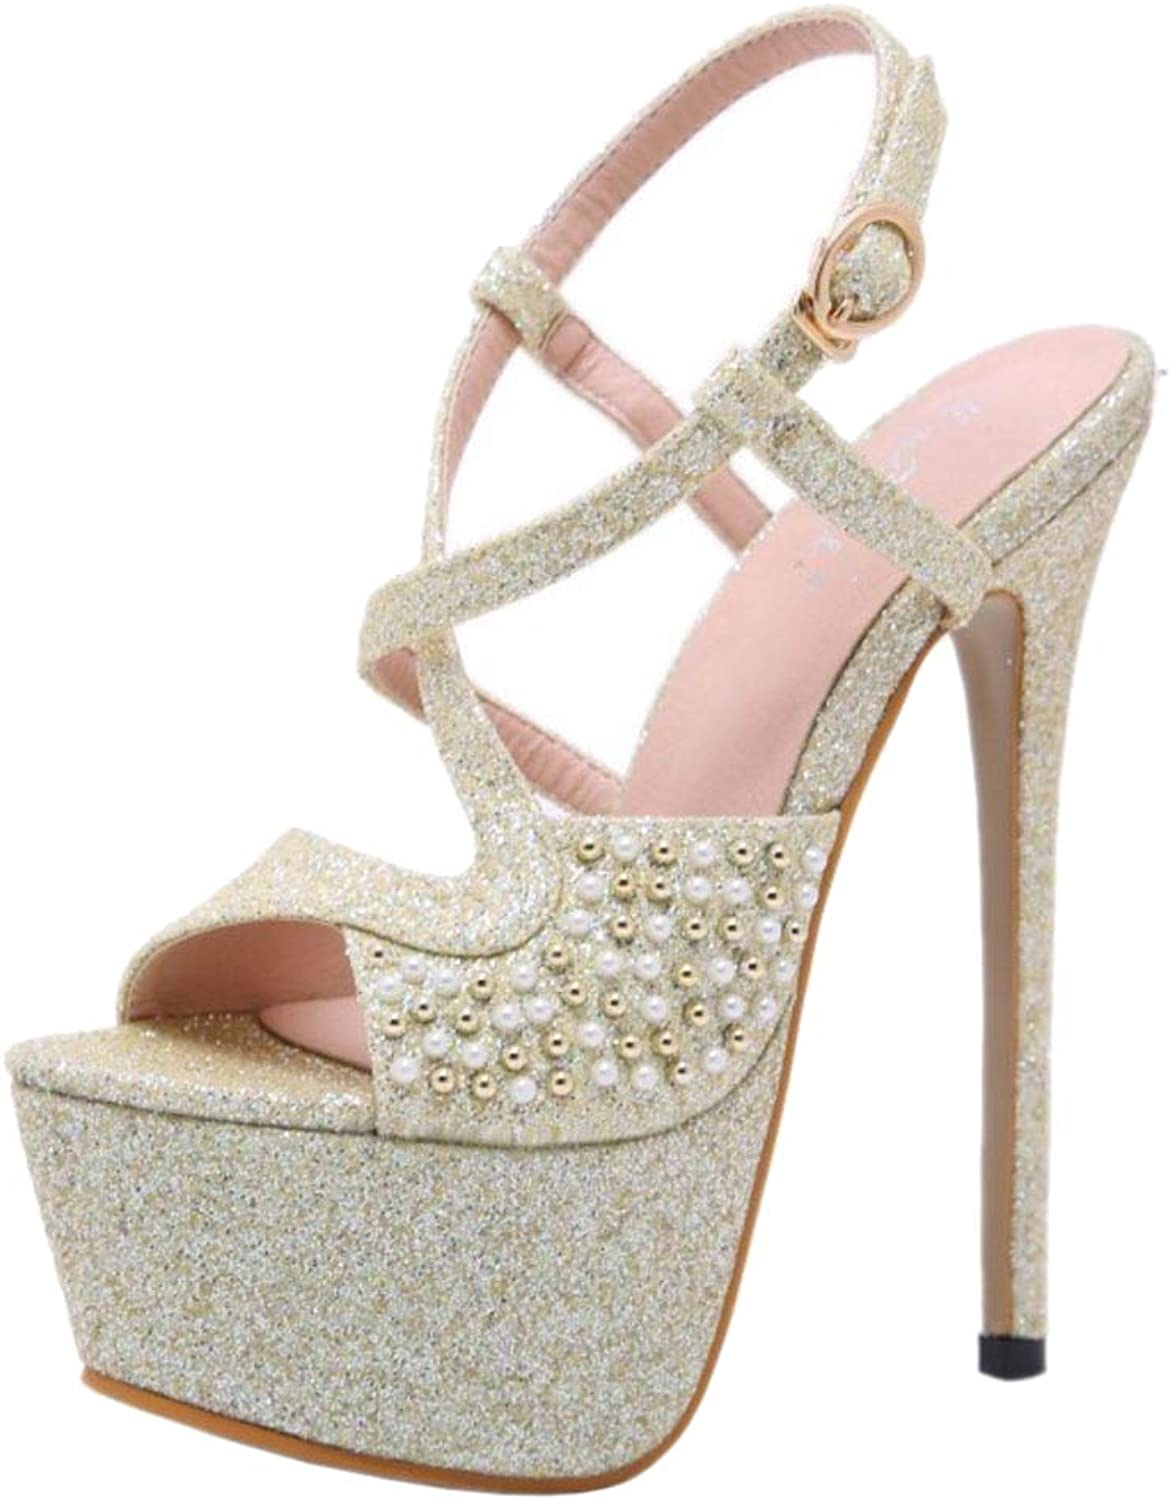 Lydee Women Fashion Stiletto Heels Sandals Evening Party shoes Pearl